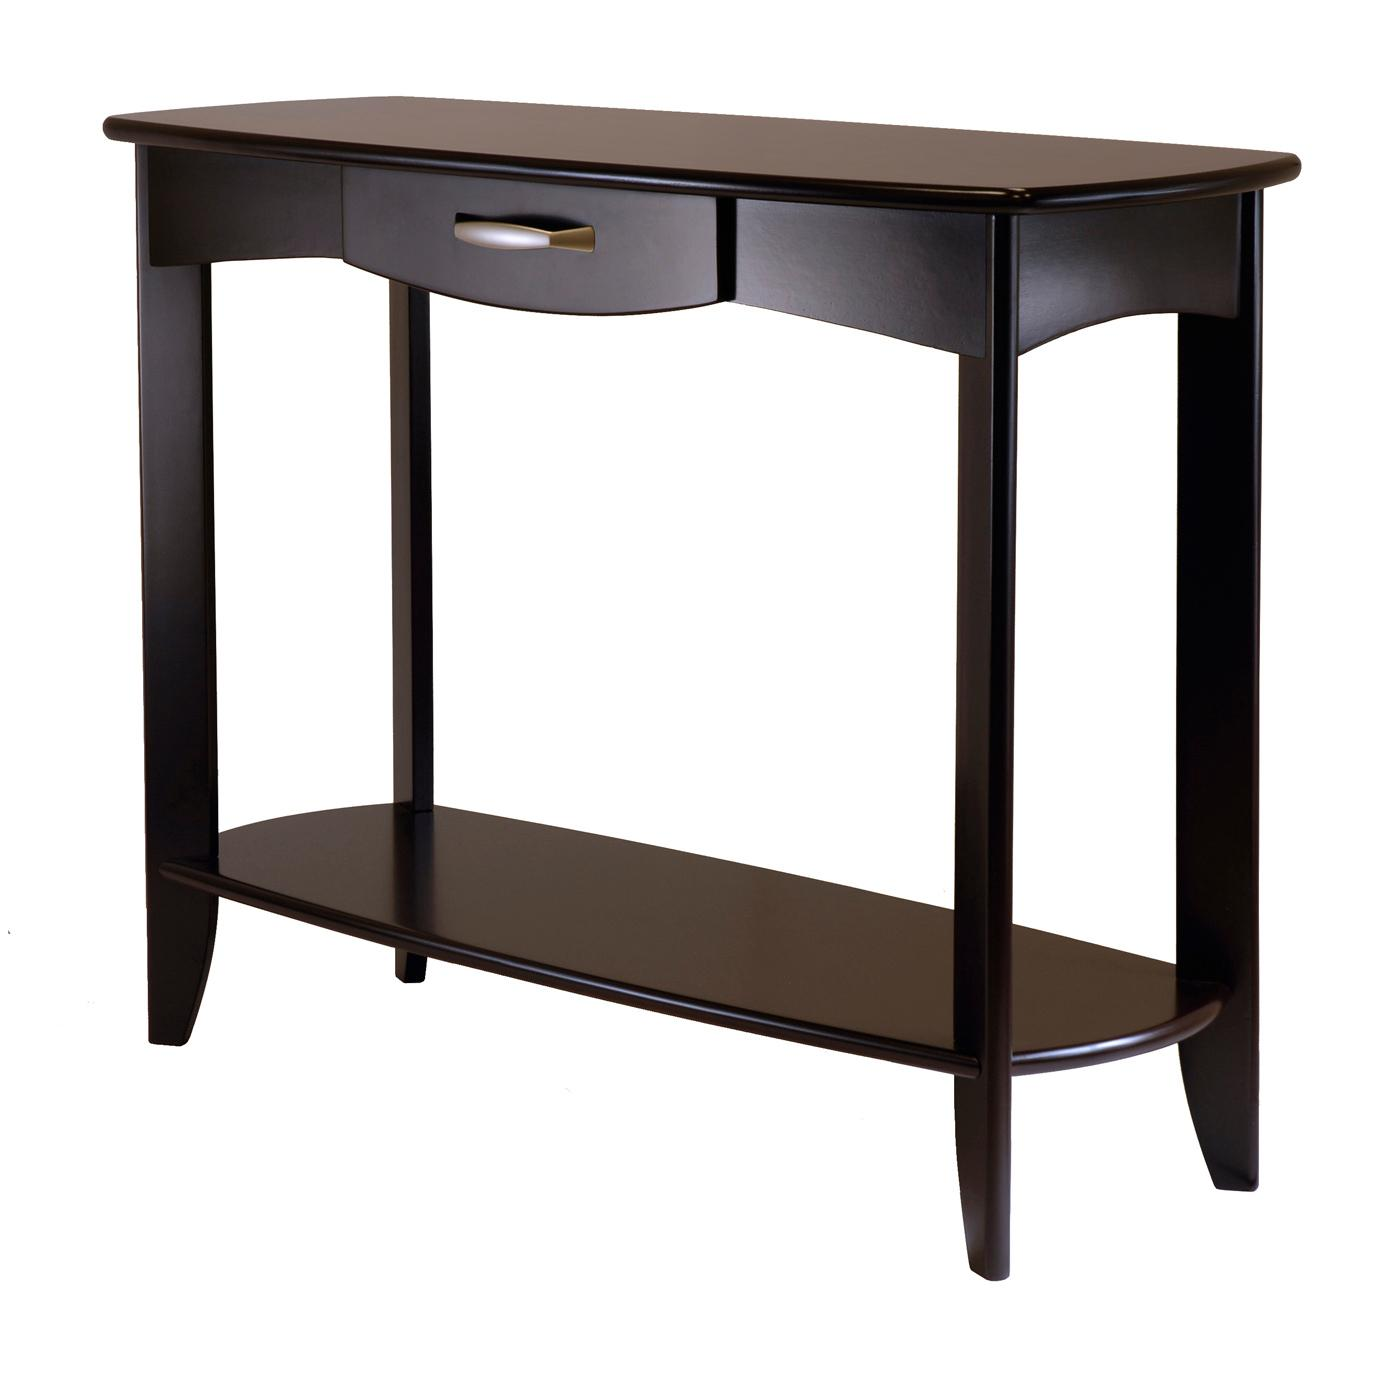 Amazoncom Winsome Wood Danica Console Table Kitchen Dining